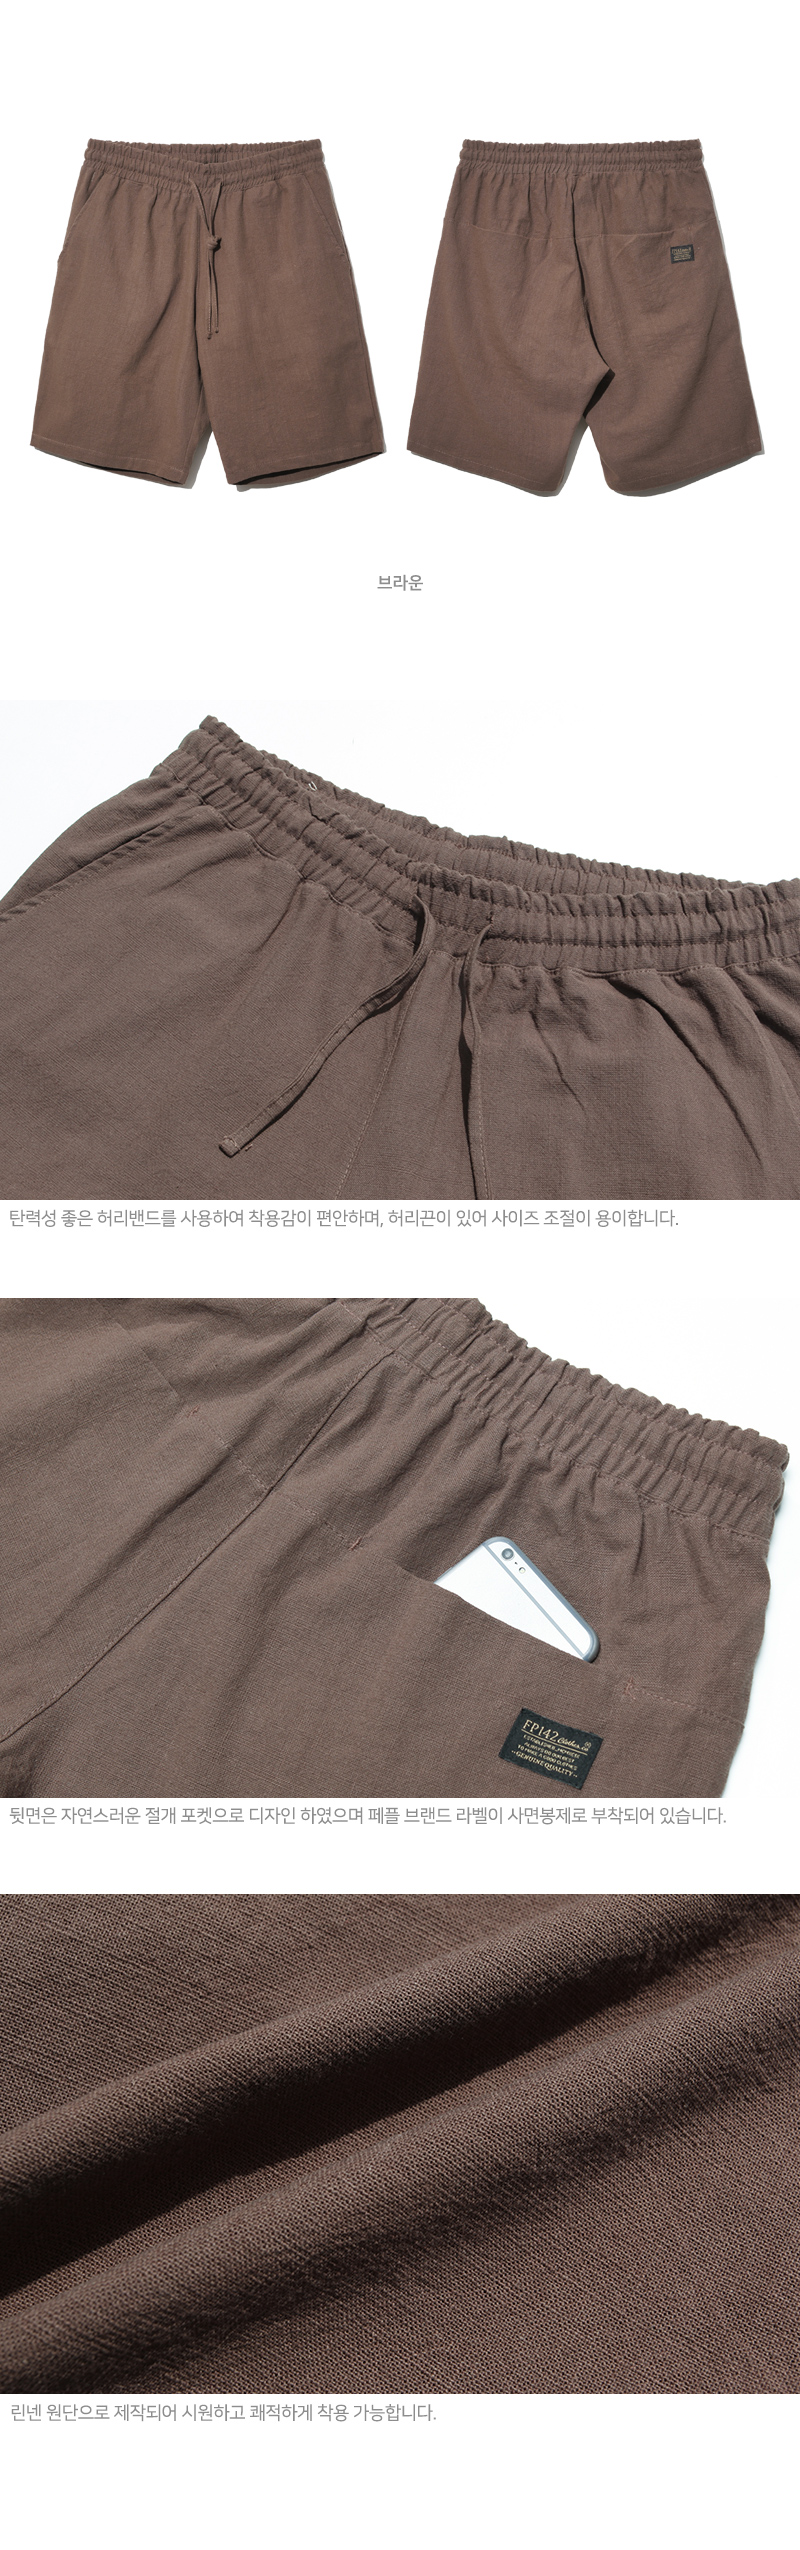 20190422_fp_realcooshortpants_detail_brown.jpg